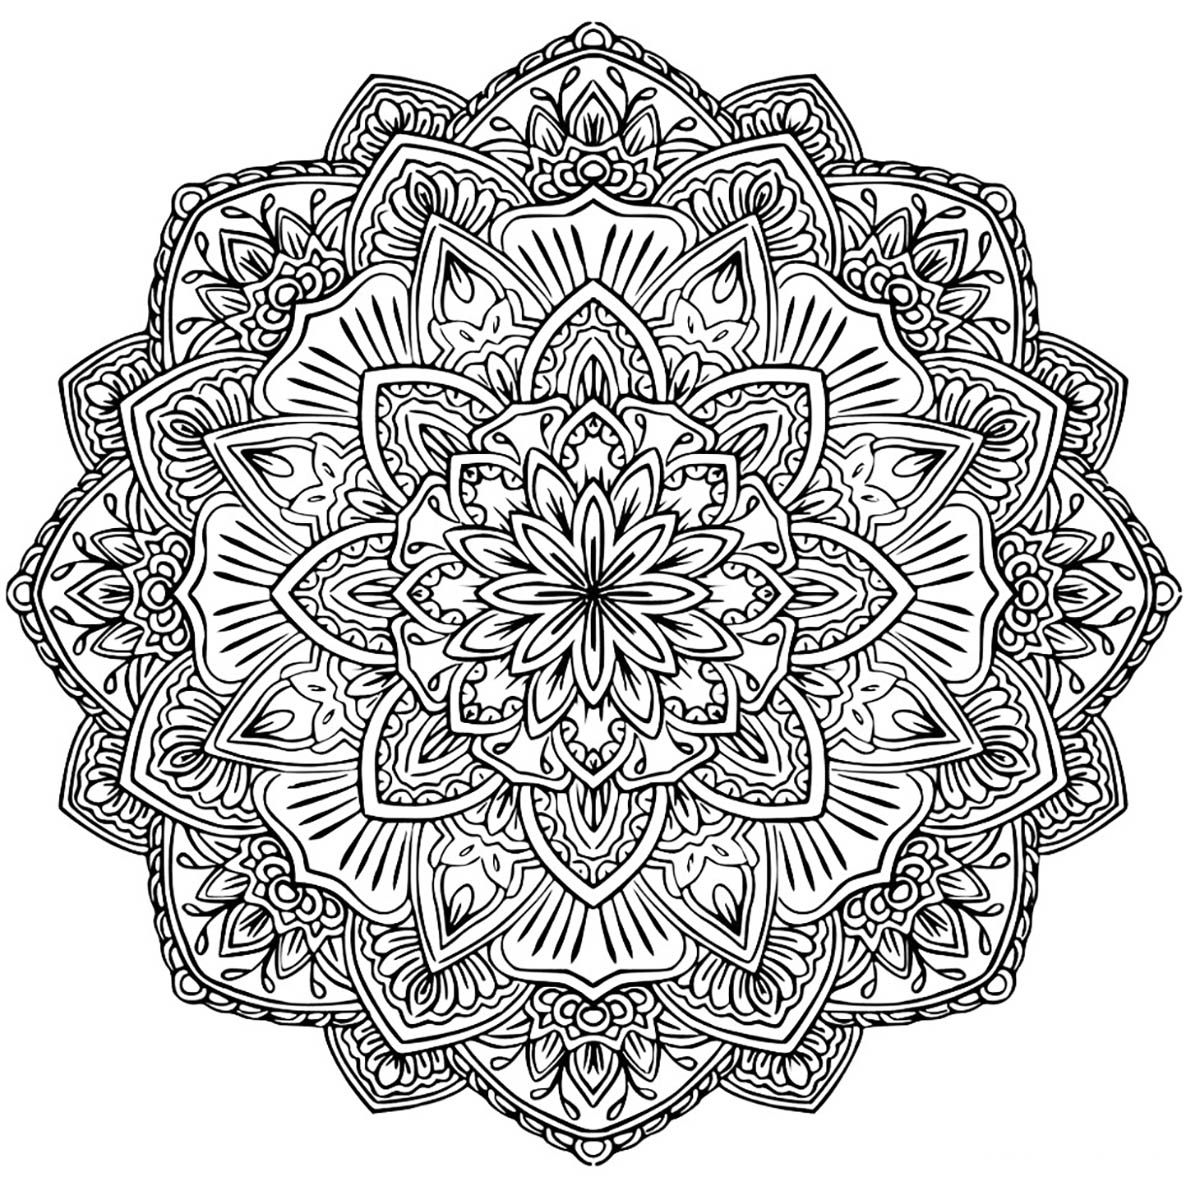 Mandala To Download Flower Of Happinessfrom The Gallery Difficult Coloriage Mandala Mandala A Colorier Mandala A Imprimer Gratuit